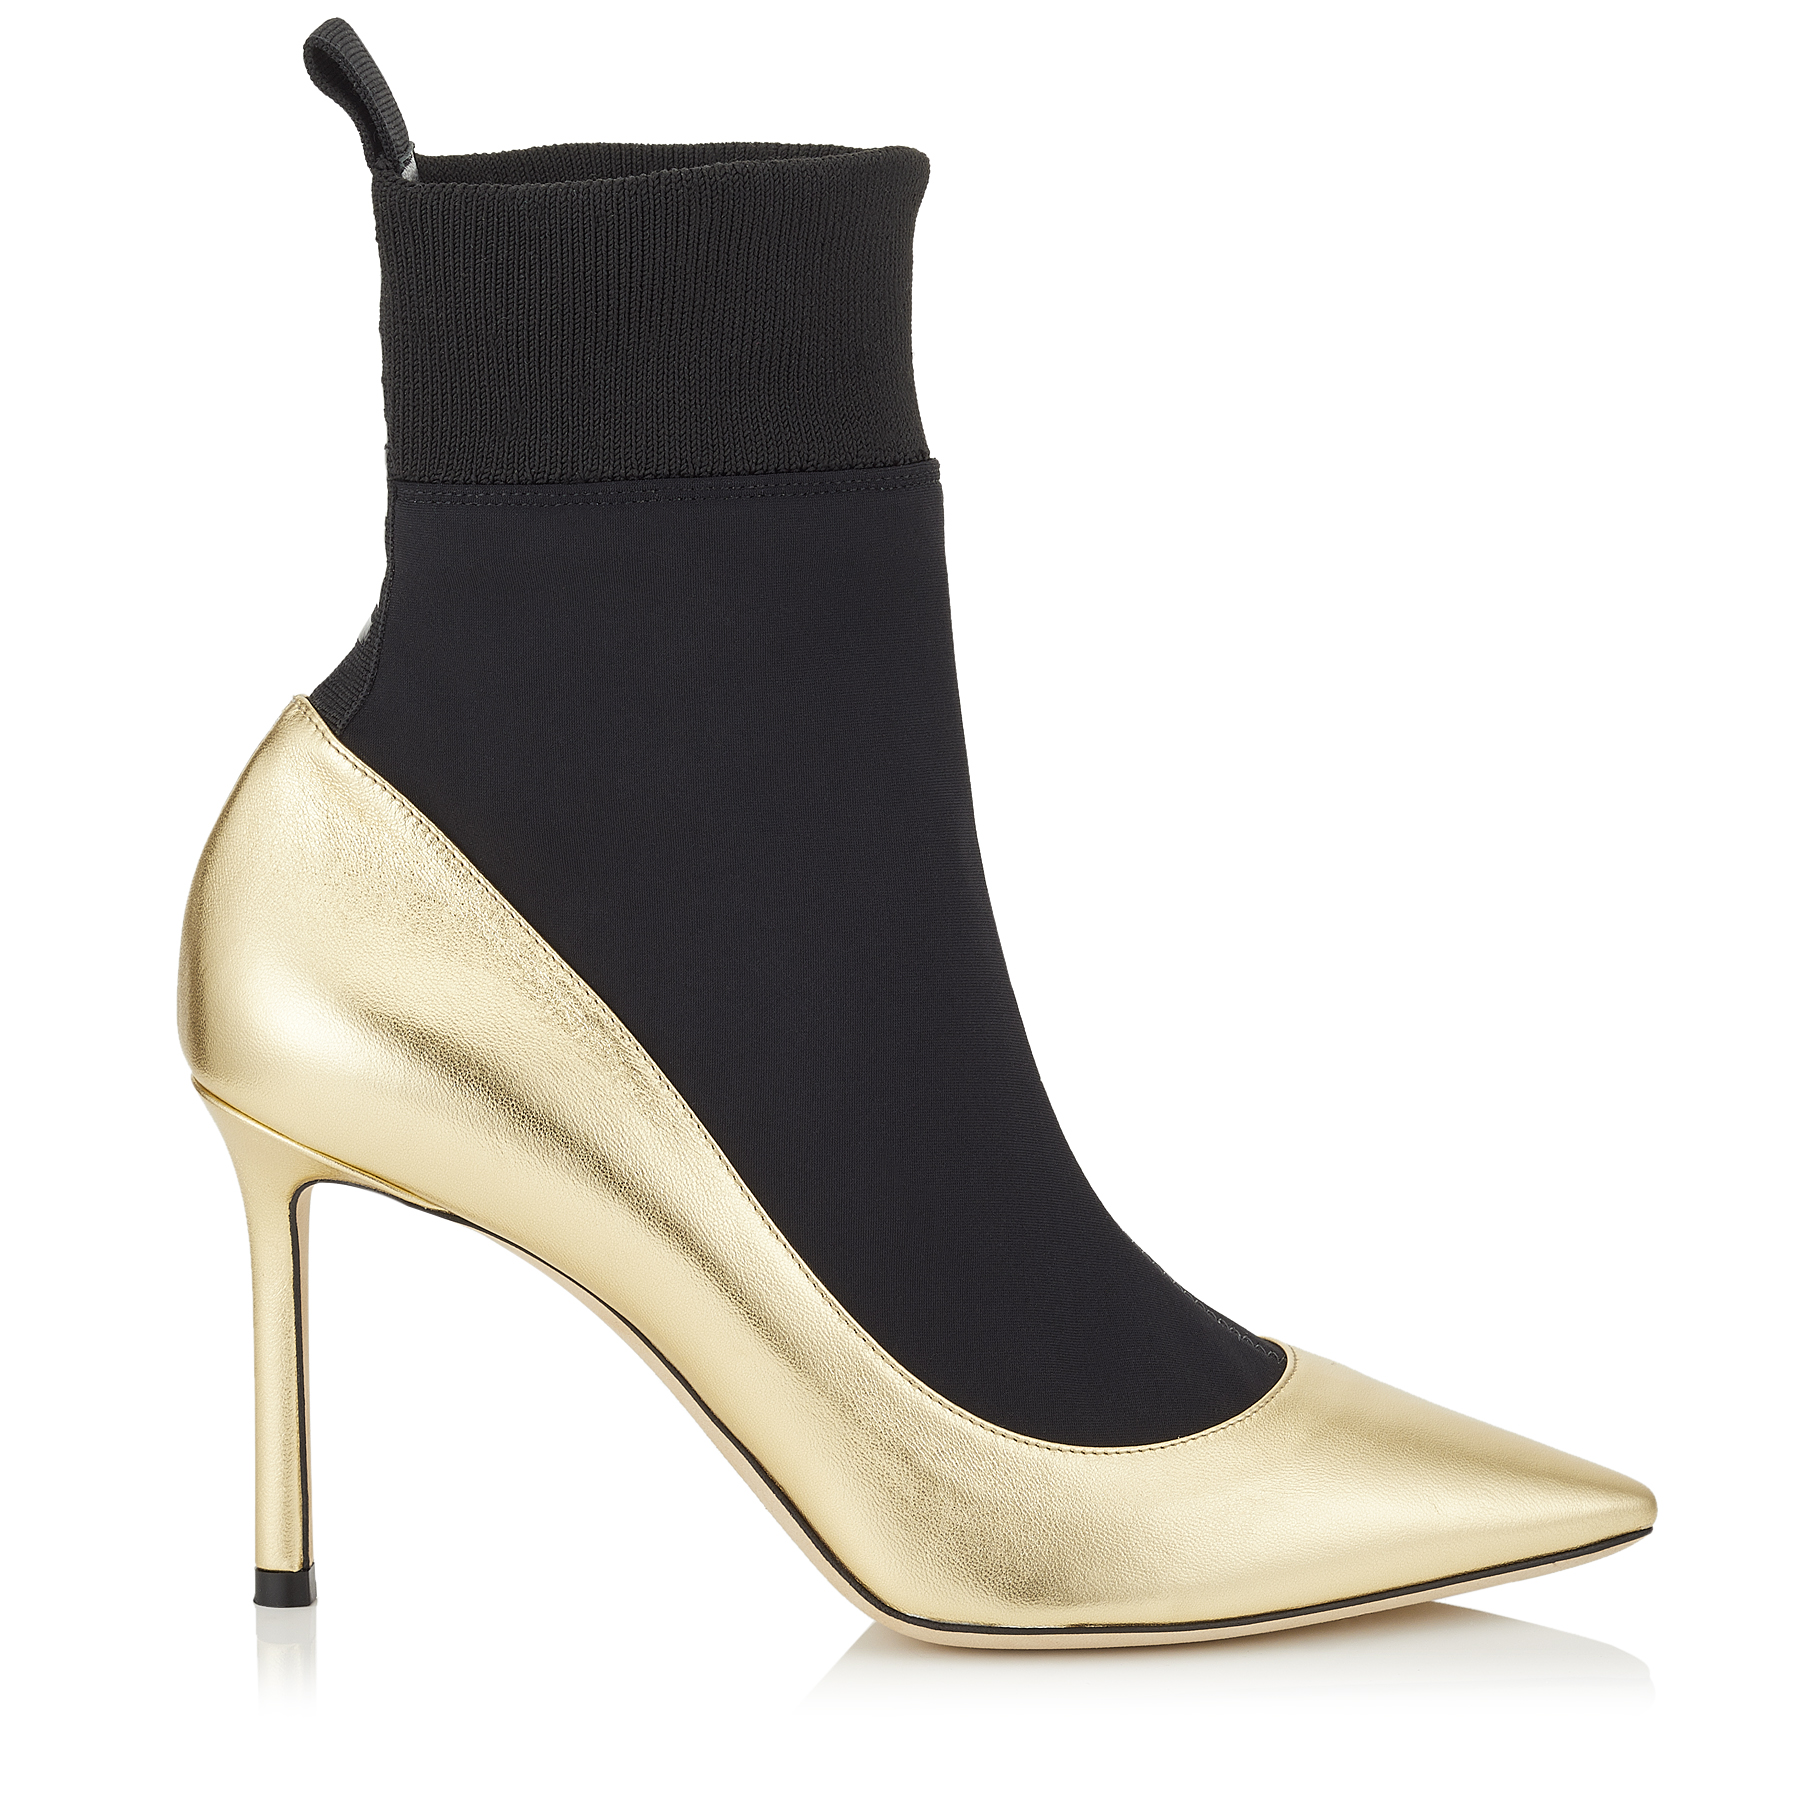 BRANDON 85 Gold Metallic Nappa Leather and Black Stretch Fabric Sock Ankle Boots by Jimmy Choo